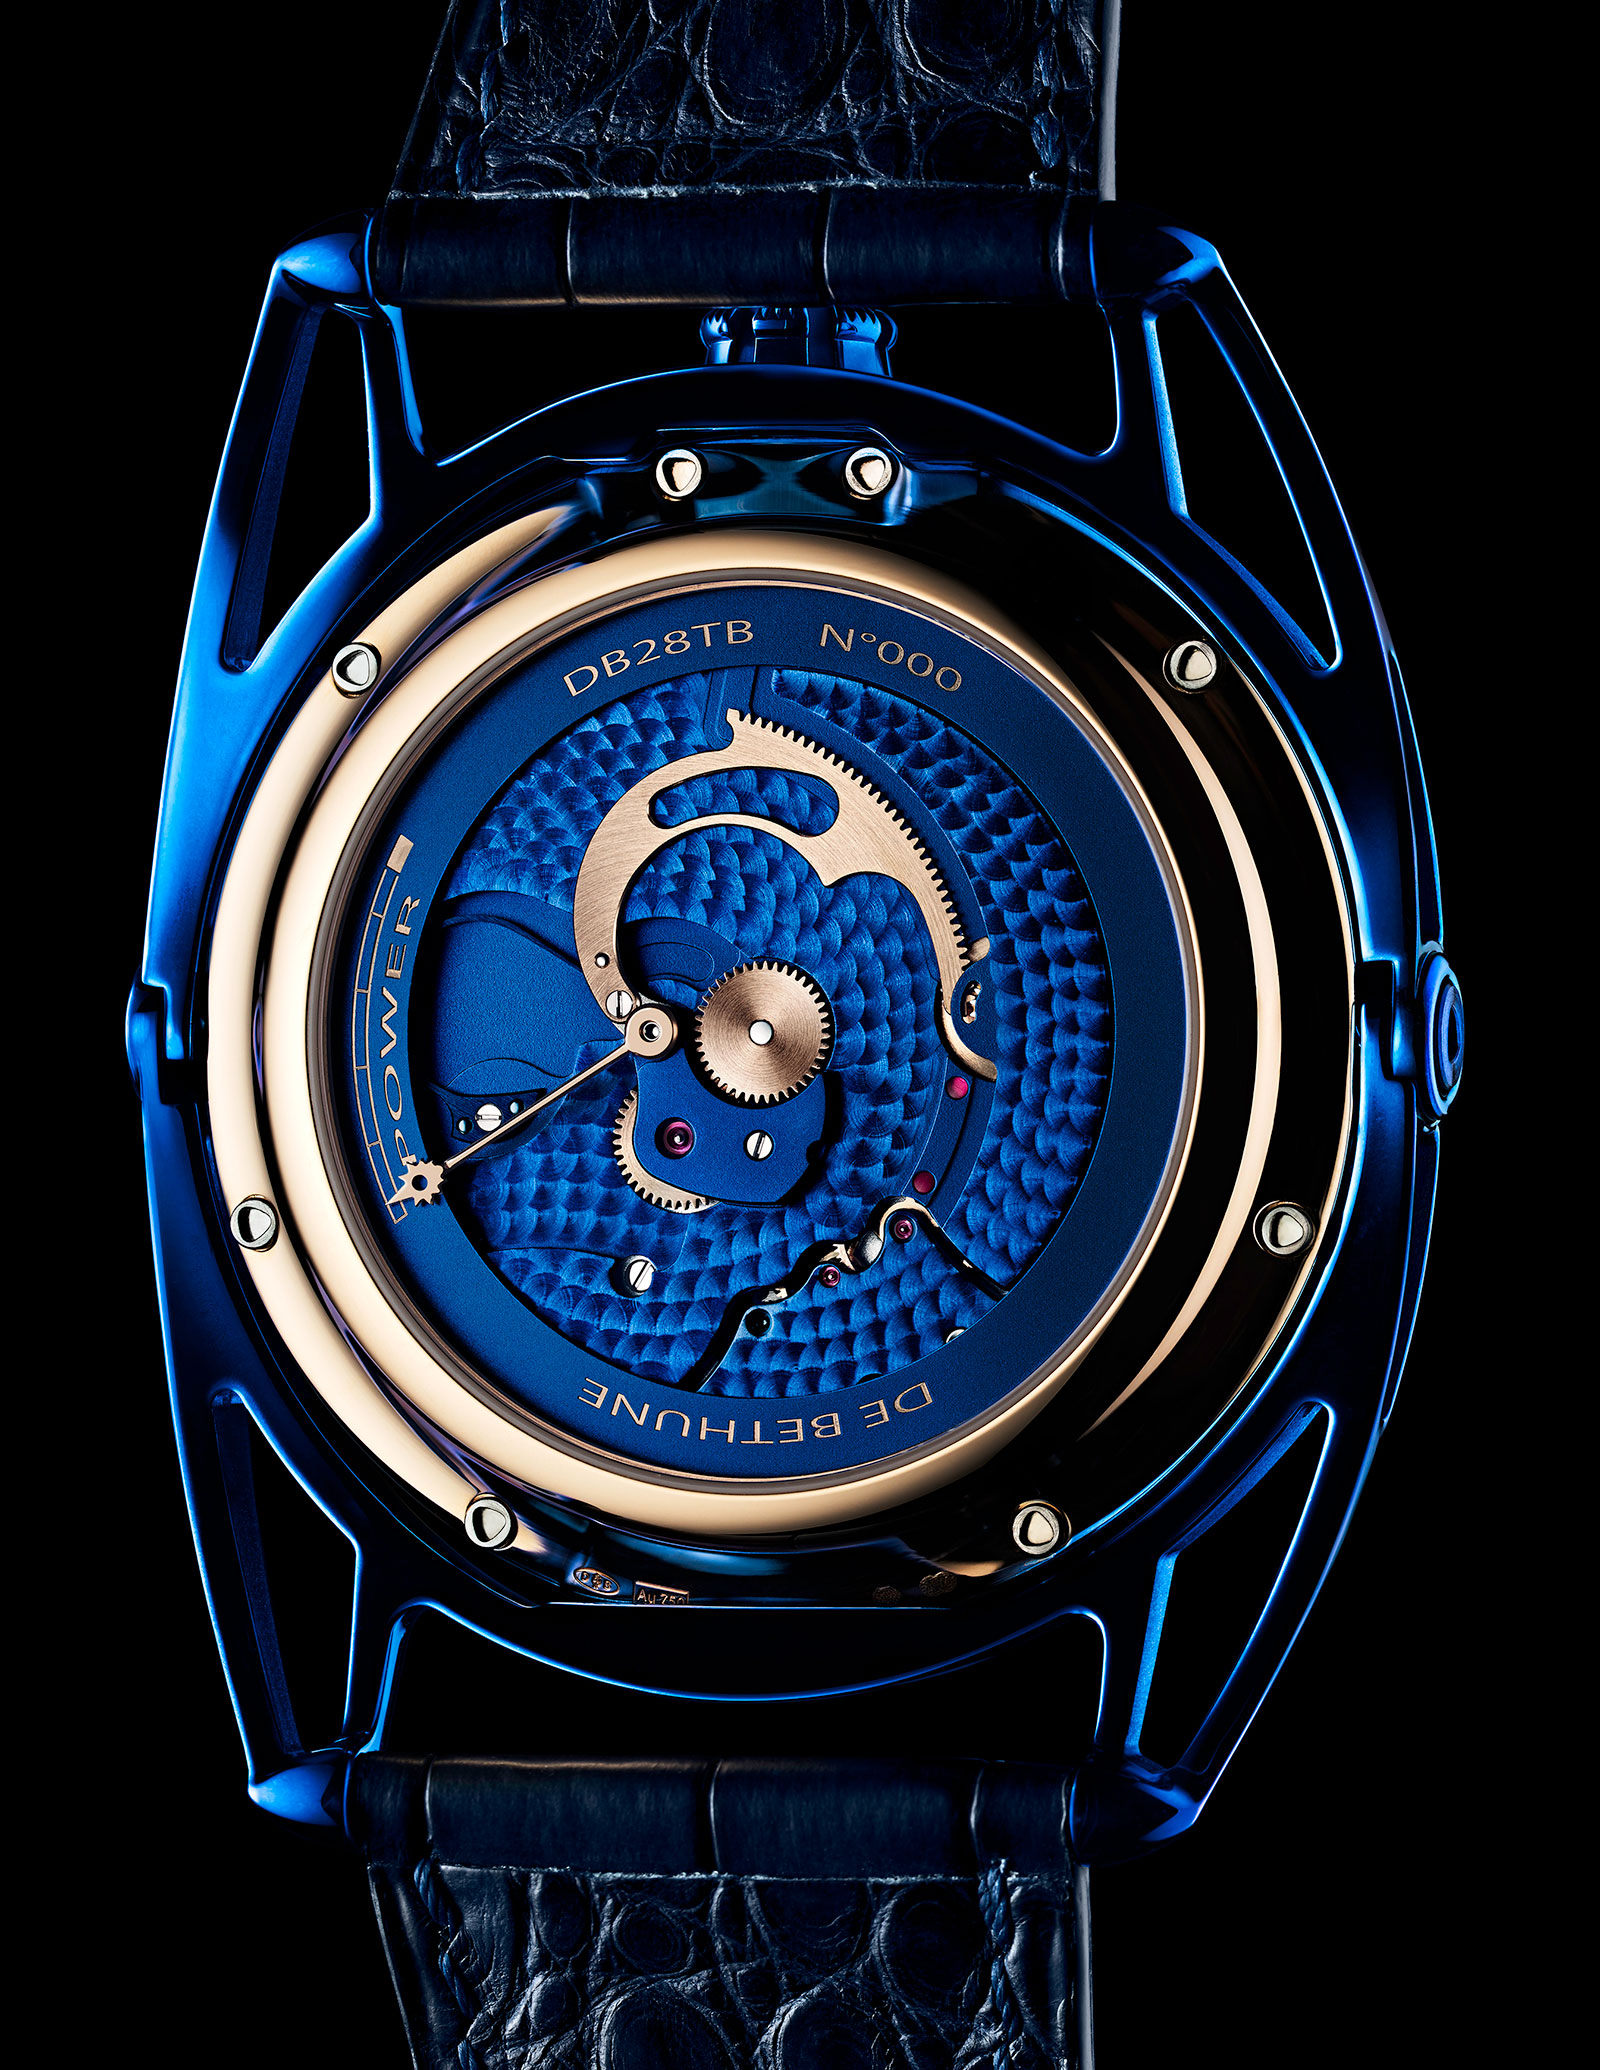 De Bethune DB28 Kind of Blue Tourbillon Meteorite 1